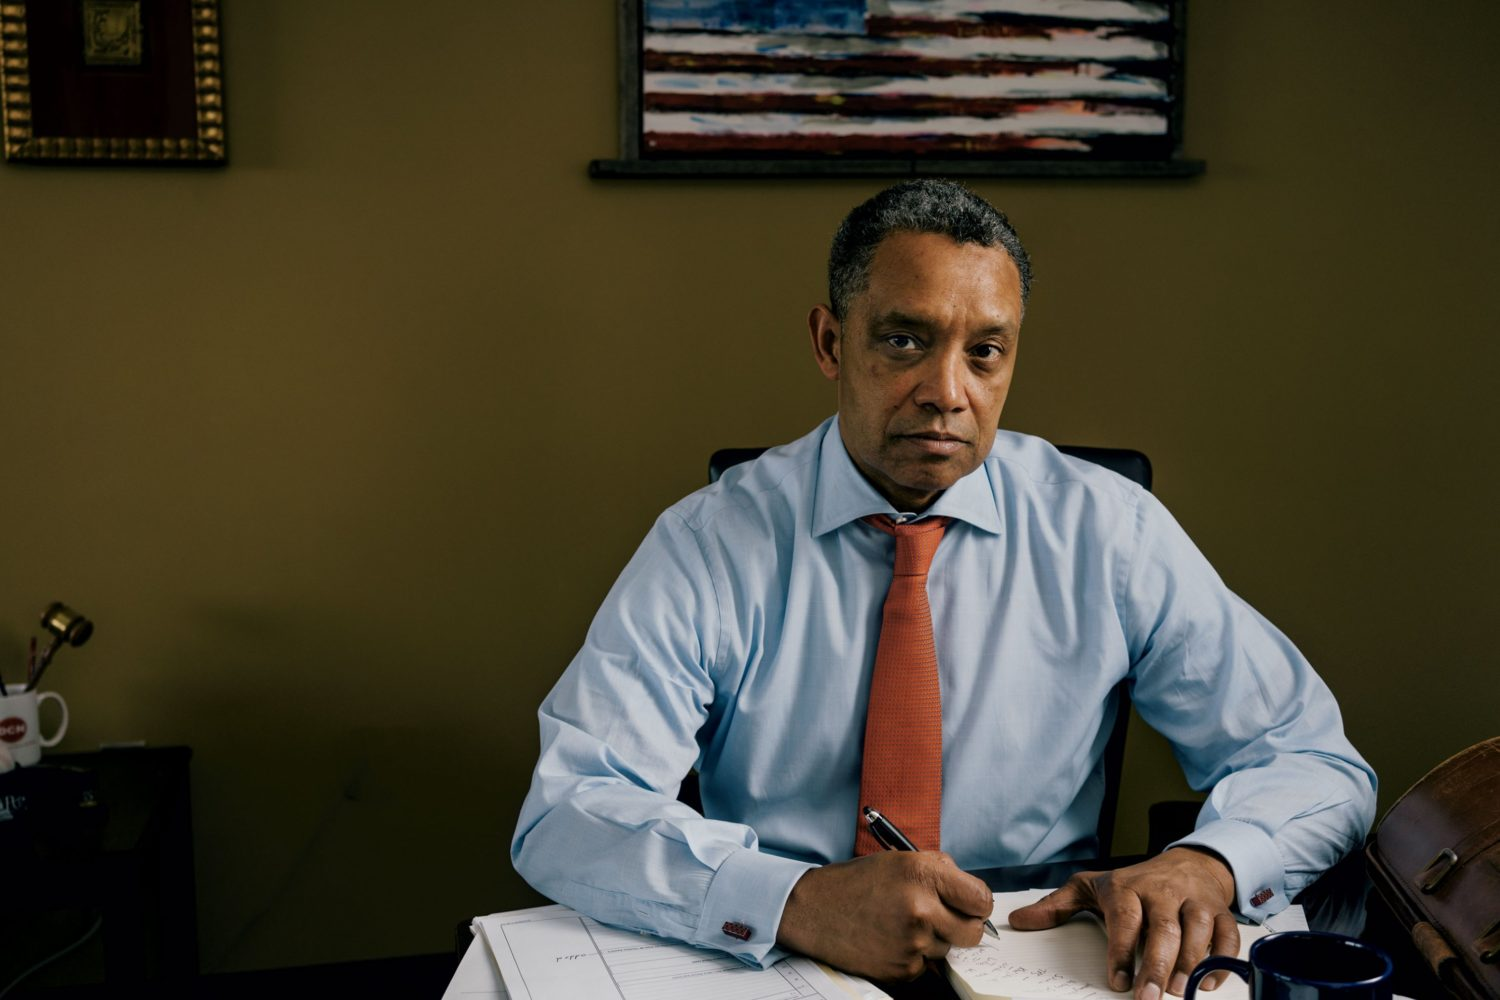 Two years ago, Karl Racine, the DC government's top lawyer, was the little-known head of an obscure and relatively new office. Today he's battling Facebook and suing Donald Trump. Who is this guy? And is his crusade actually good for the city that employs him? Photograph by Lexey Swall.